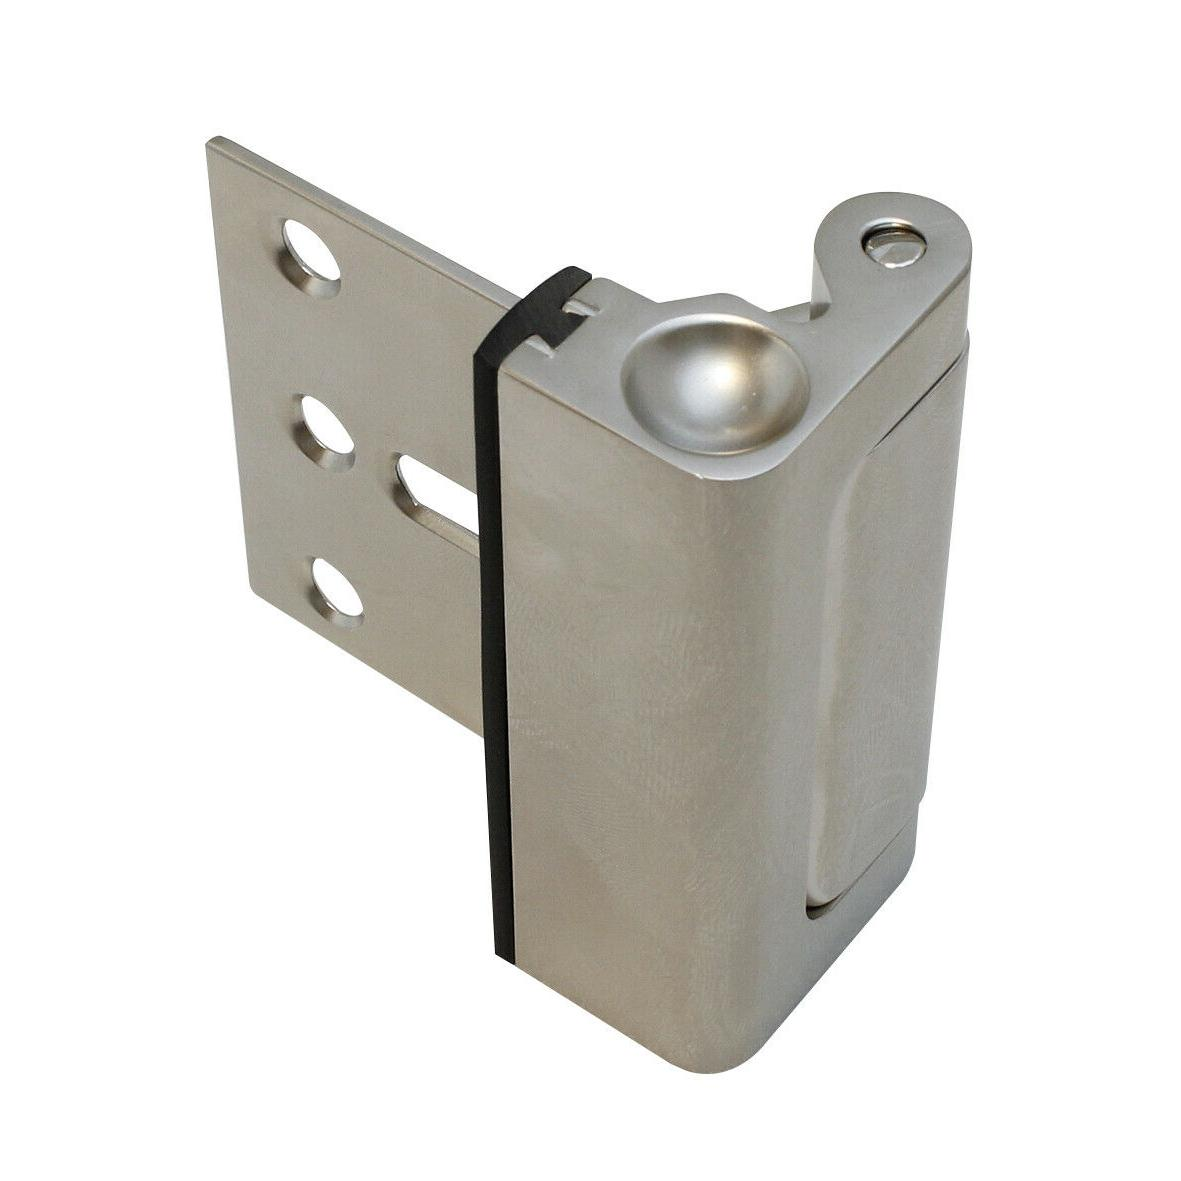 Door Reinforcement Lock Home Security Childproof Home Safety Easy Install